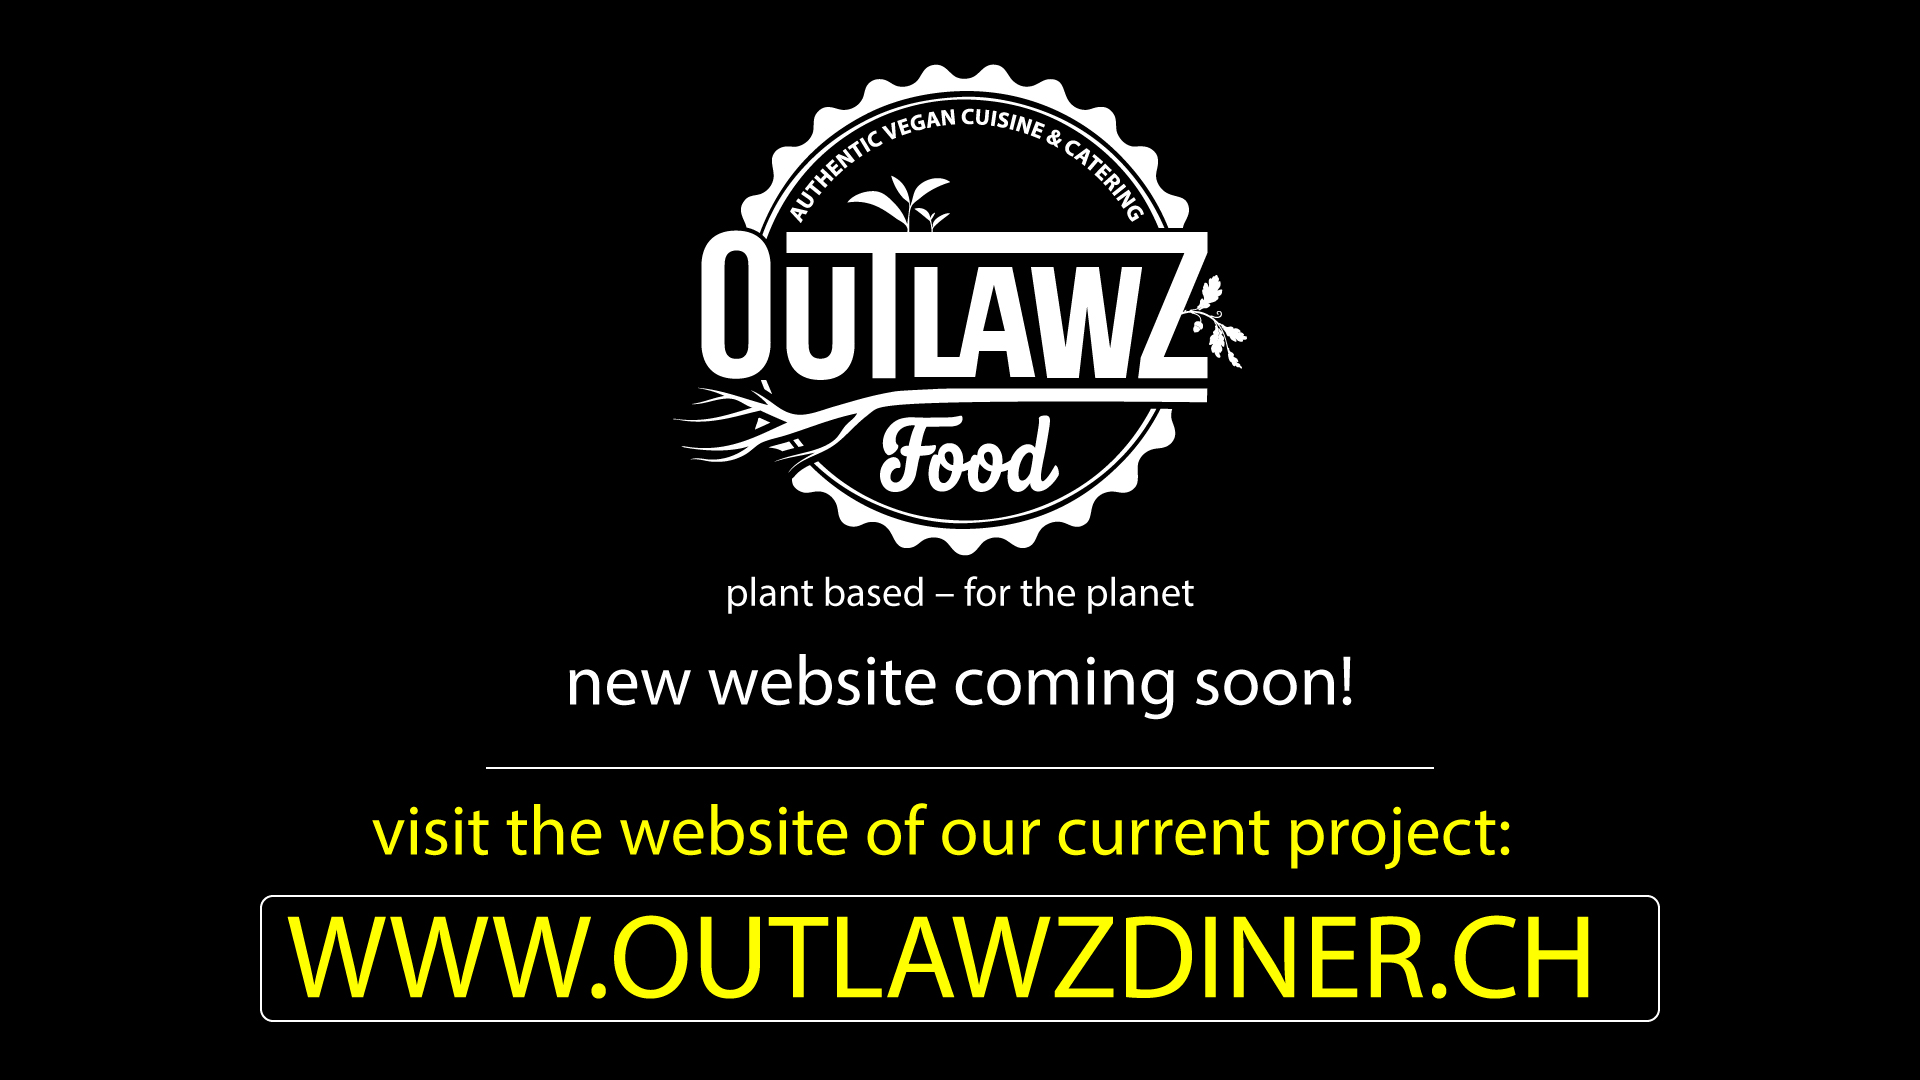 New website coming soon. Visit www.outlawzdiner.ch for our new project.